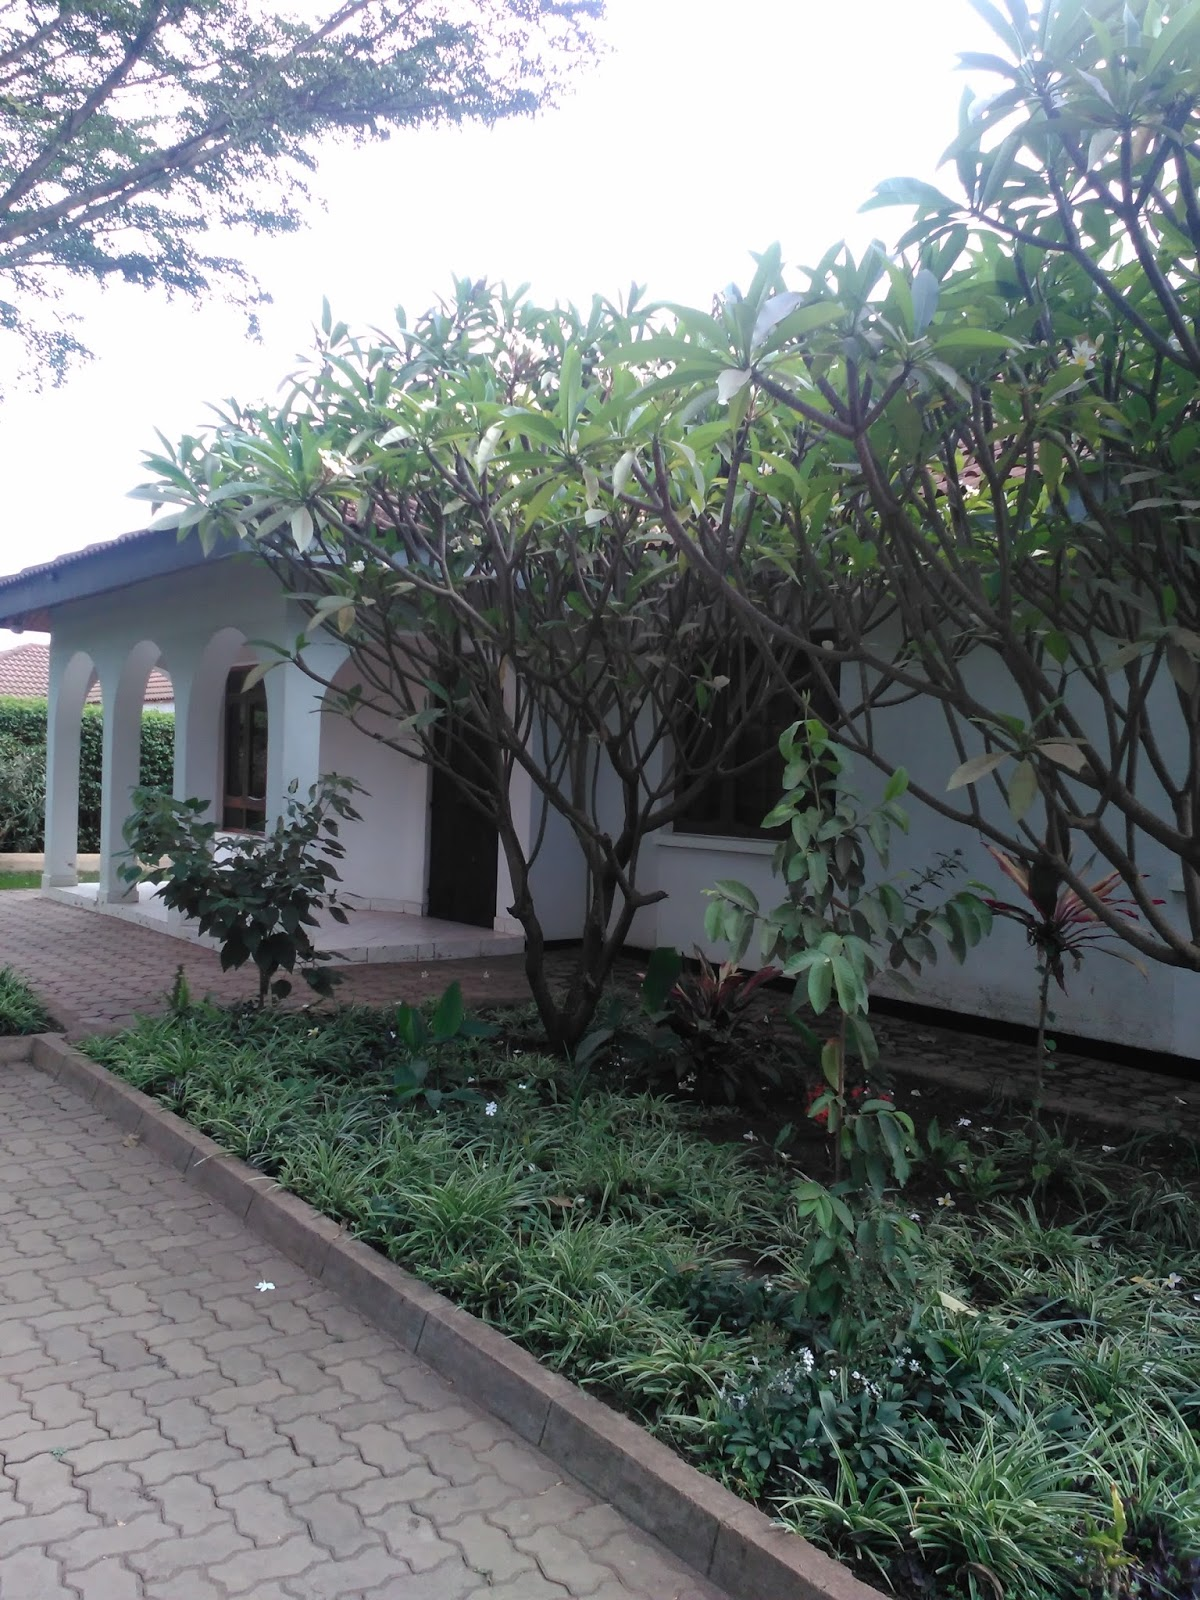 Rent House In Tanzania Arusha Rent Houses Houses For Sale Real Estates Trends Houses For Rent